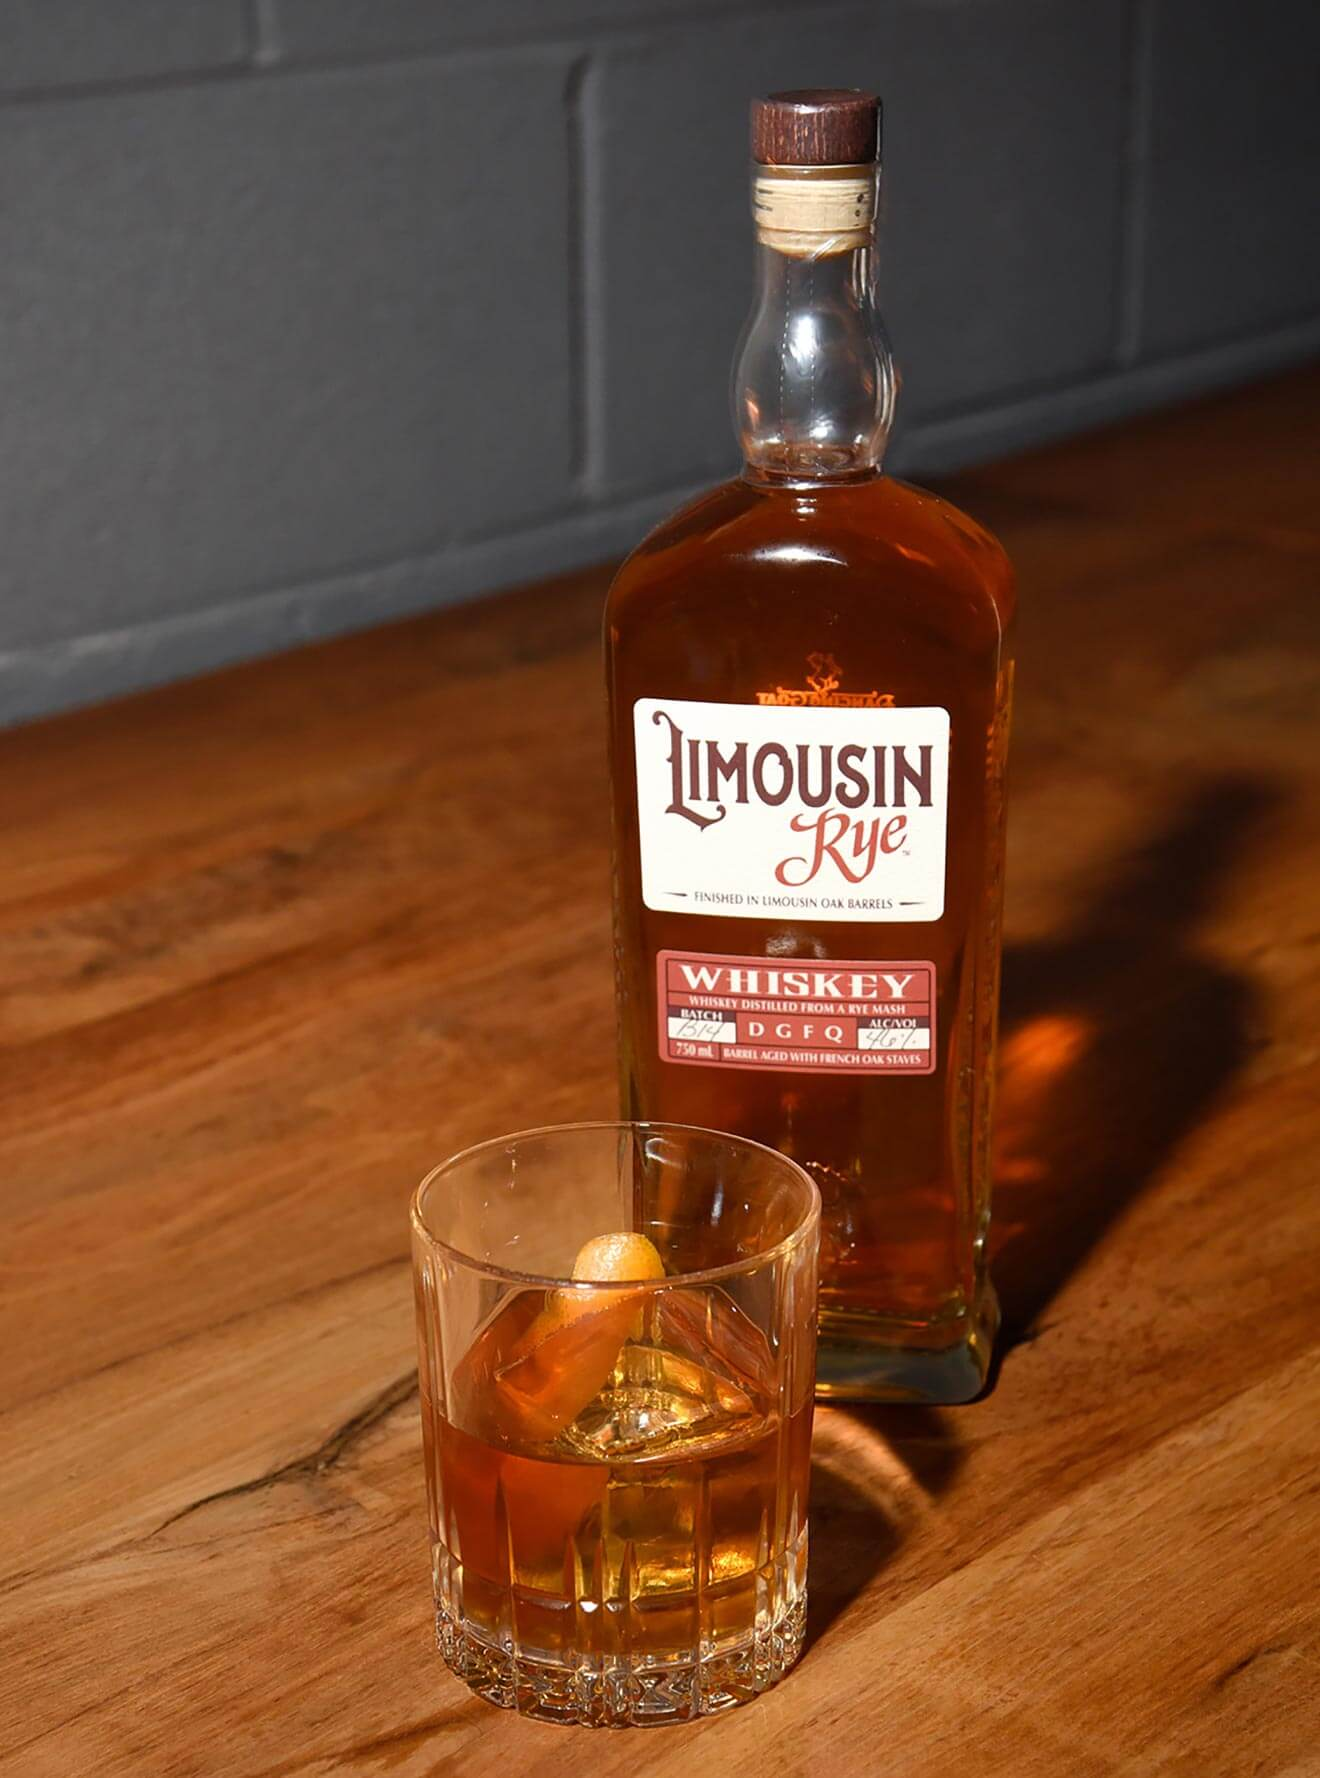 Limousin Rye Salted Maple Old Fashioned, cocktail and bottle